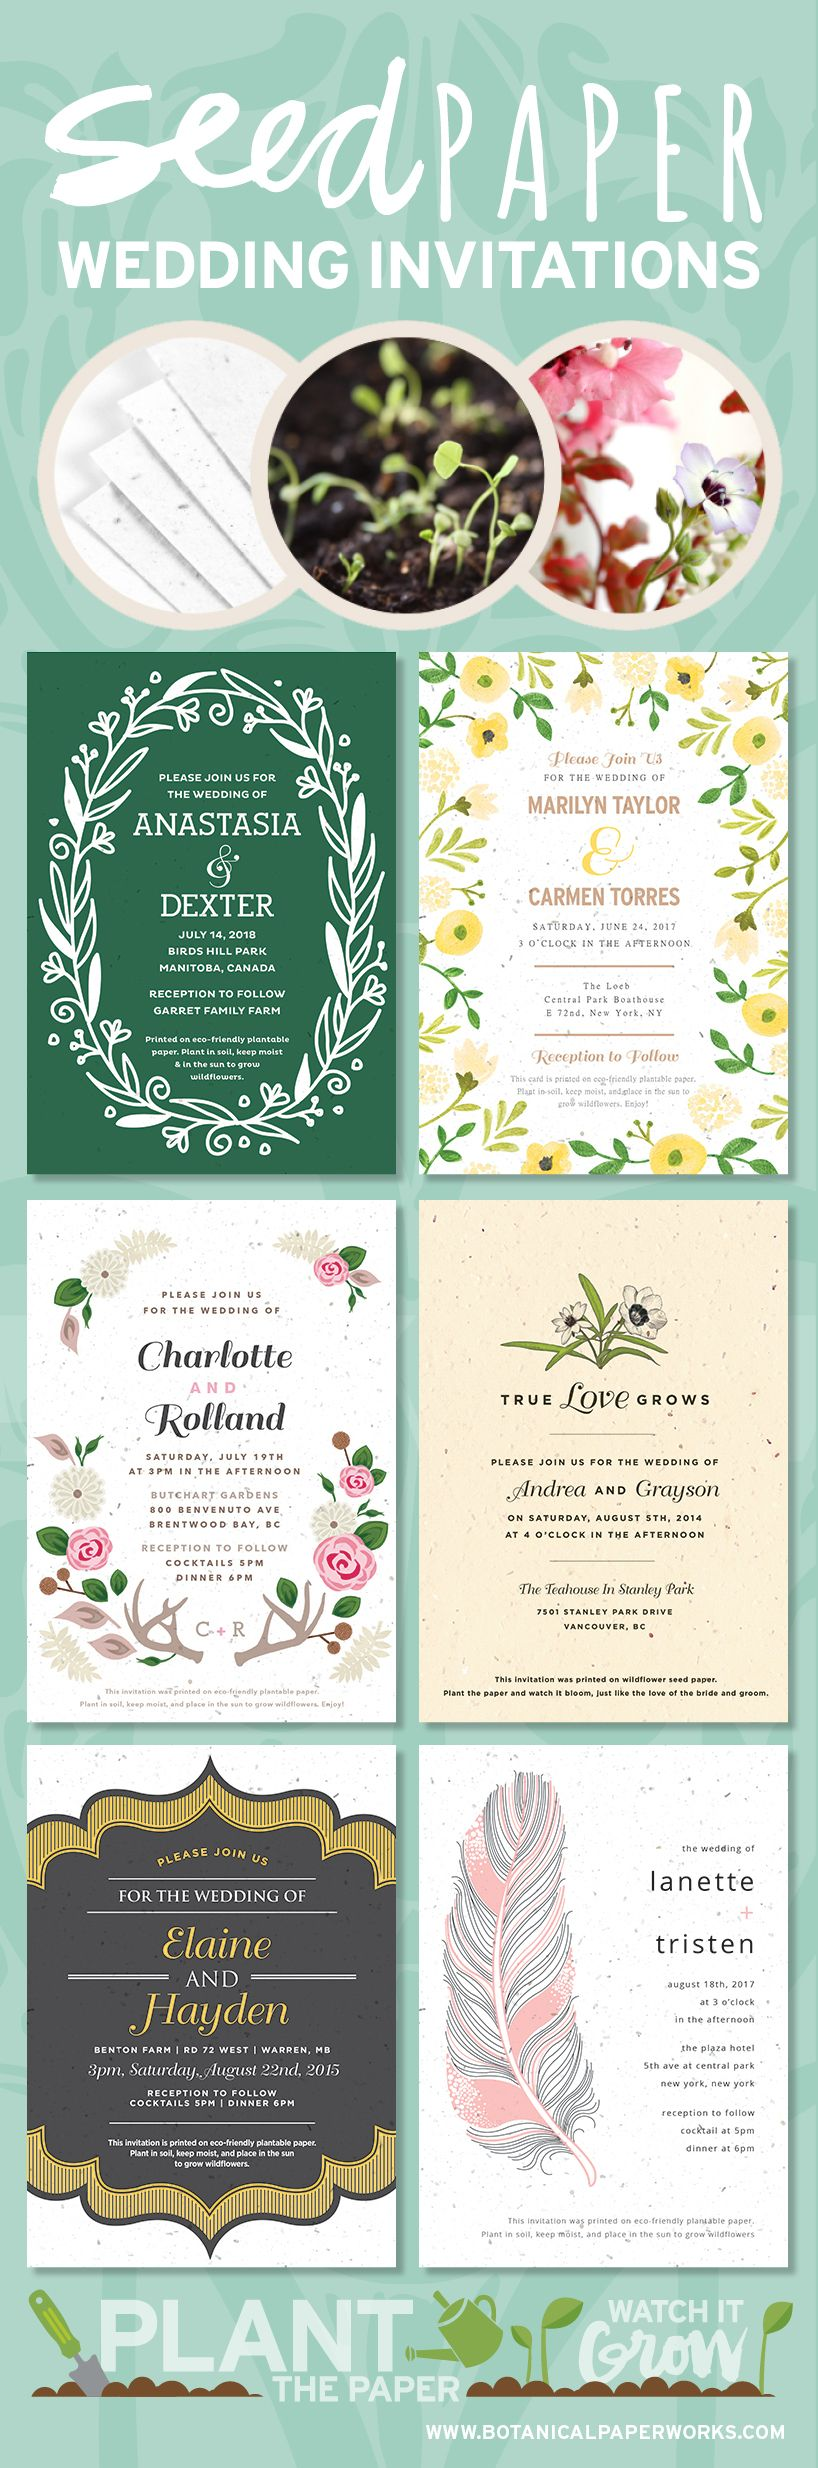 Plant love & let the memory of your wedding day live on with seed ...